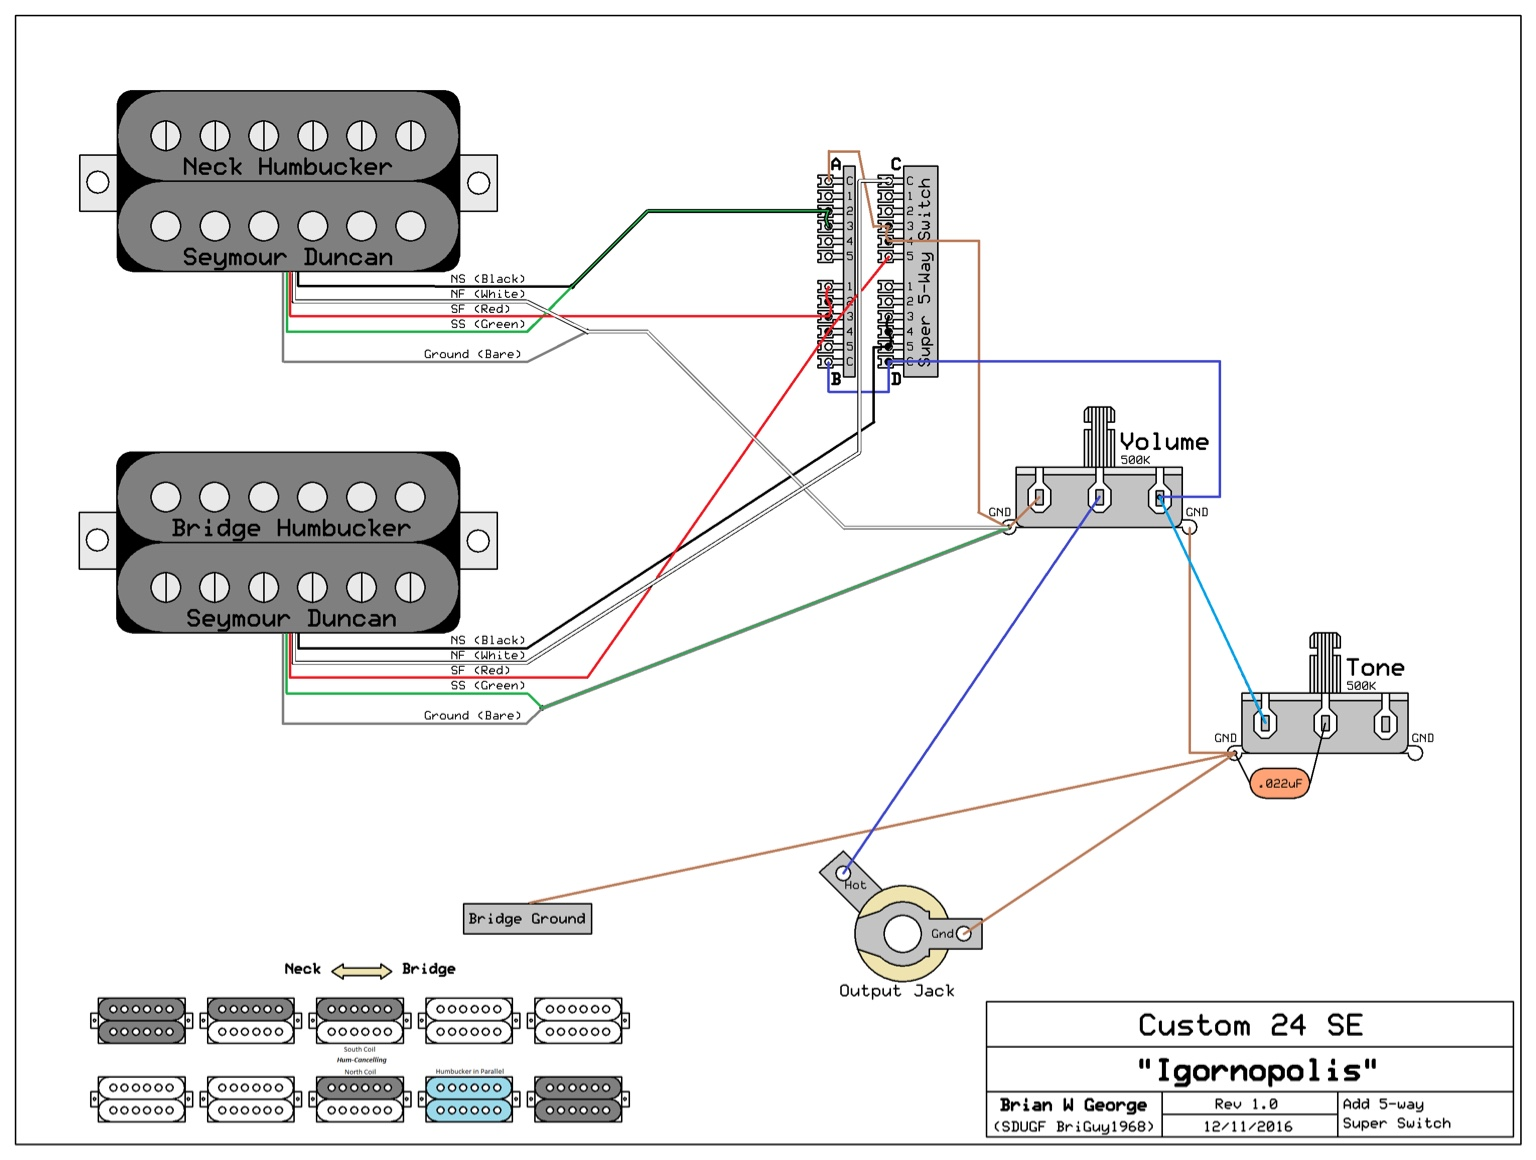 5 way super switch wiring help rh seymourduncan com